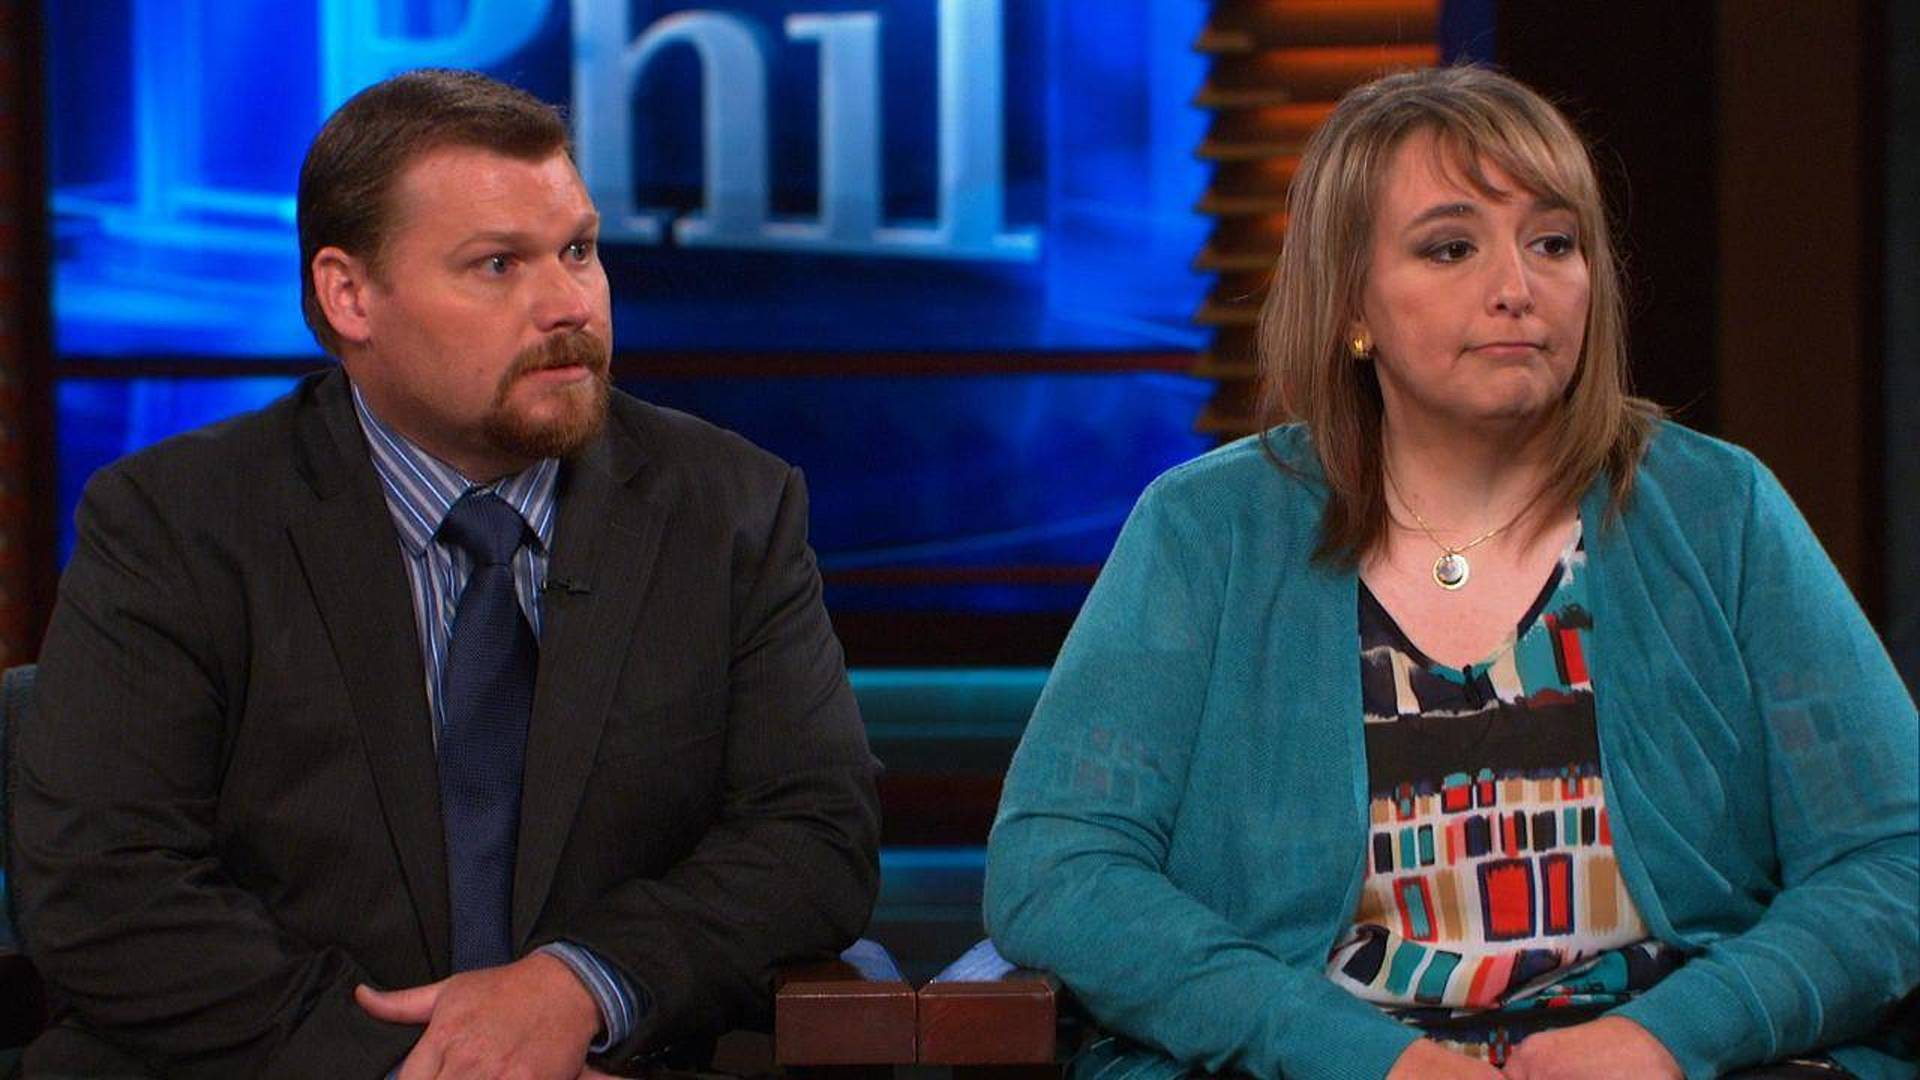 The murderous couple that appeared on Dr. Phil.